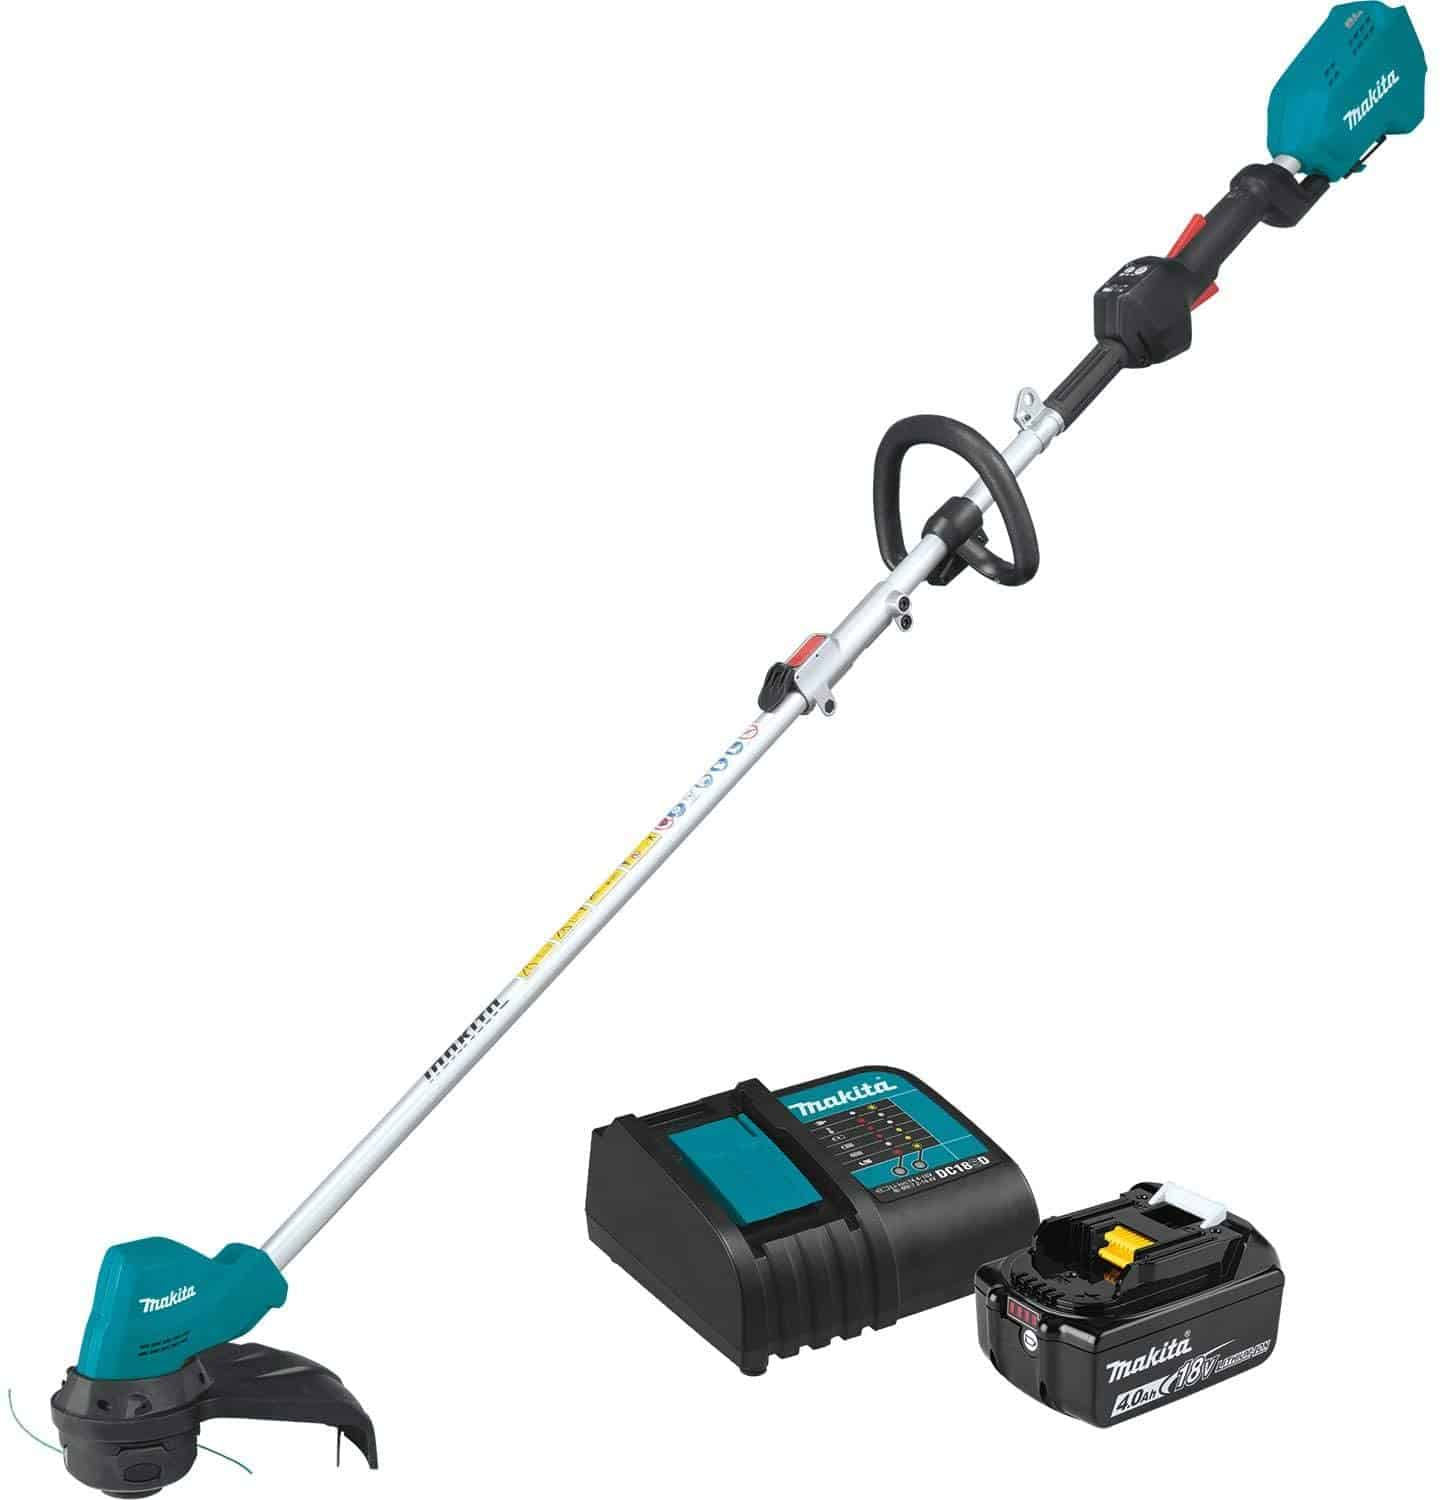 Best weed eater for precision trimming- Makita XRU12SM1 Lithium-Ion kit